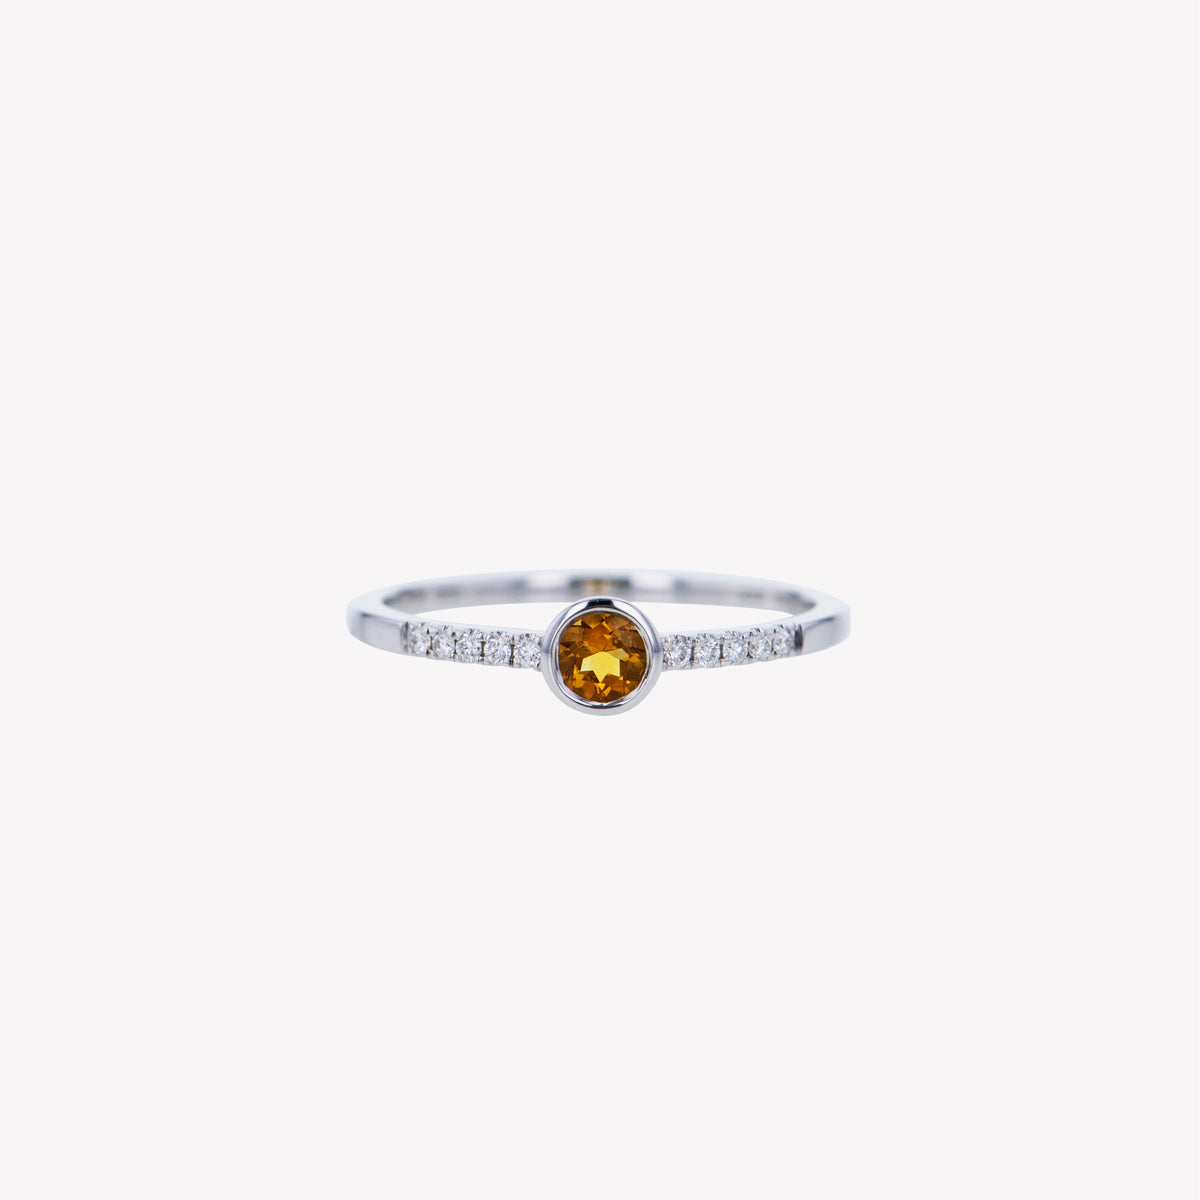 18K W/G Yellow Citrine Diamond Ring